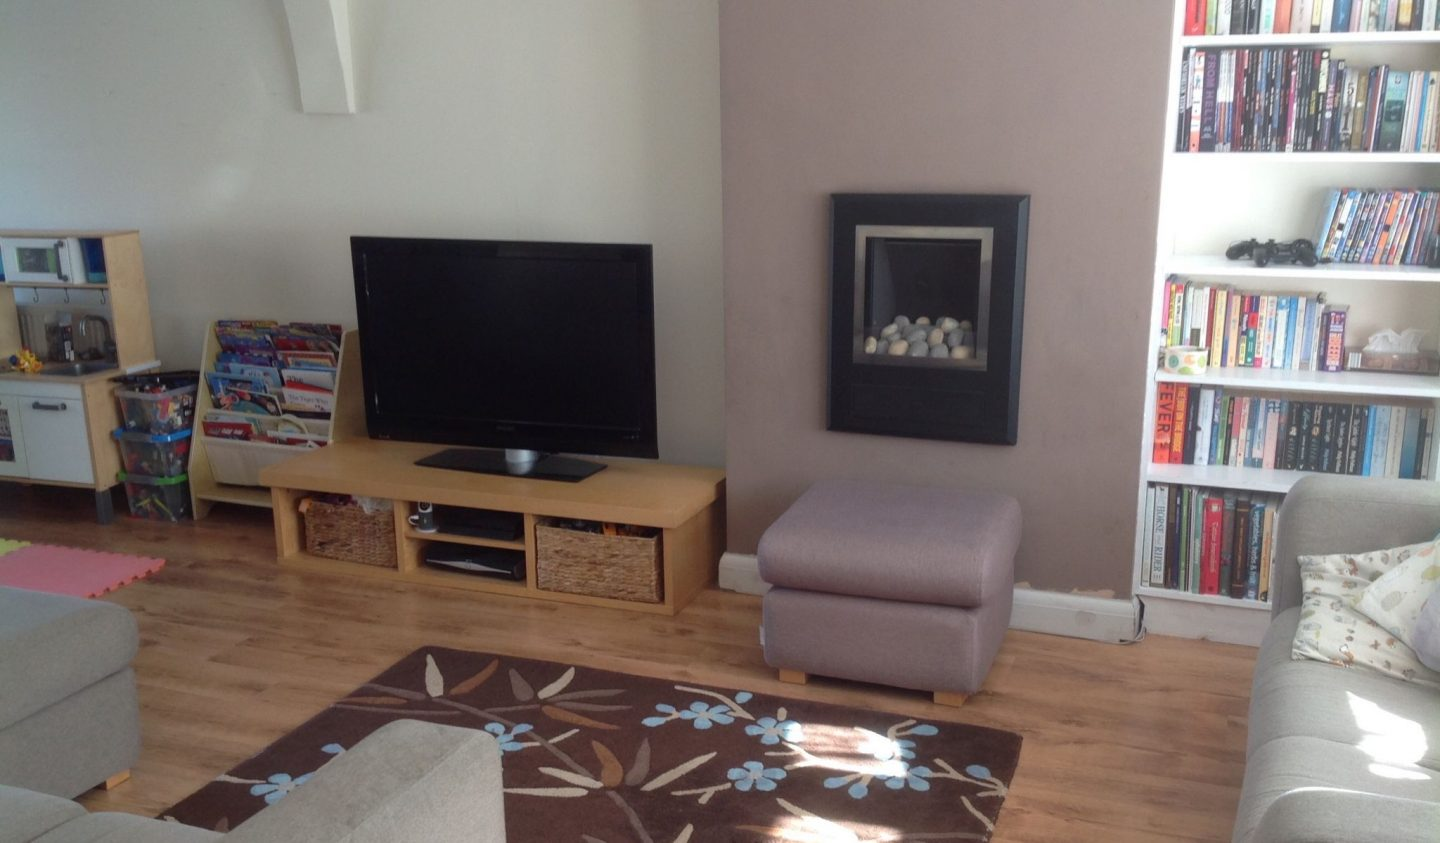 Before the budget living room makeover